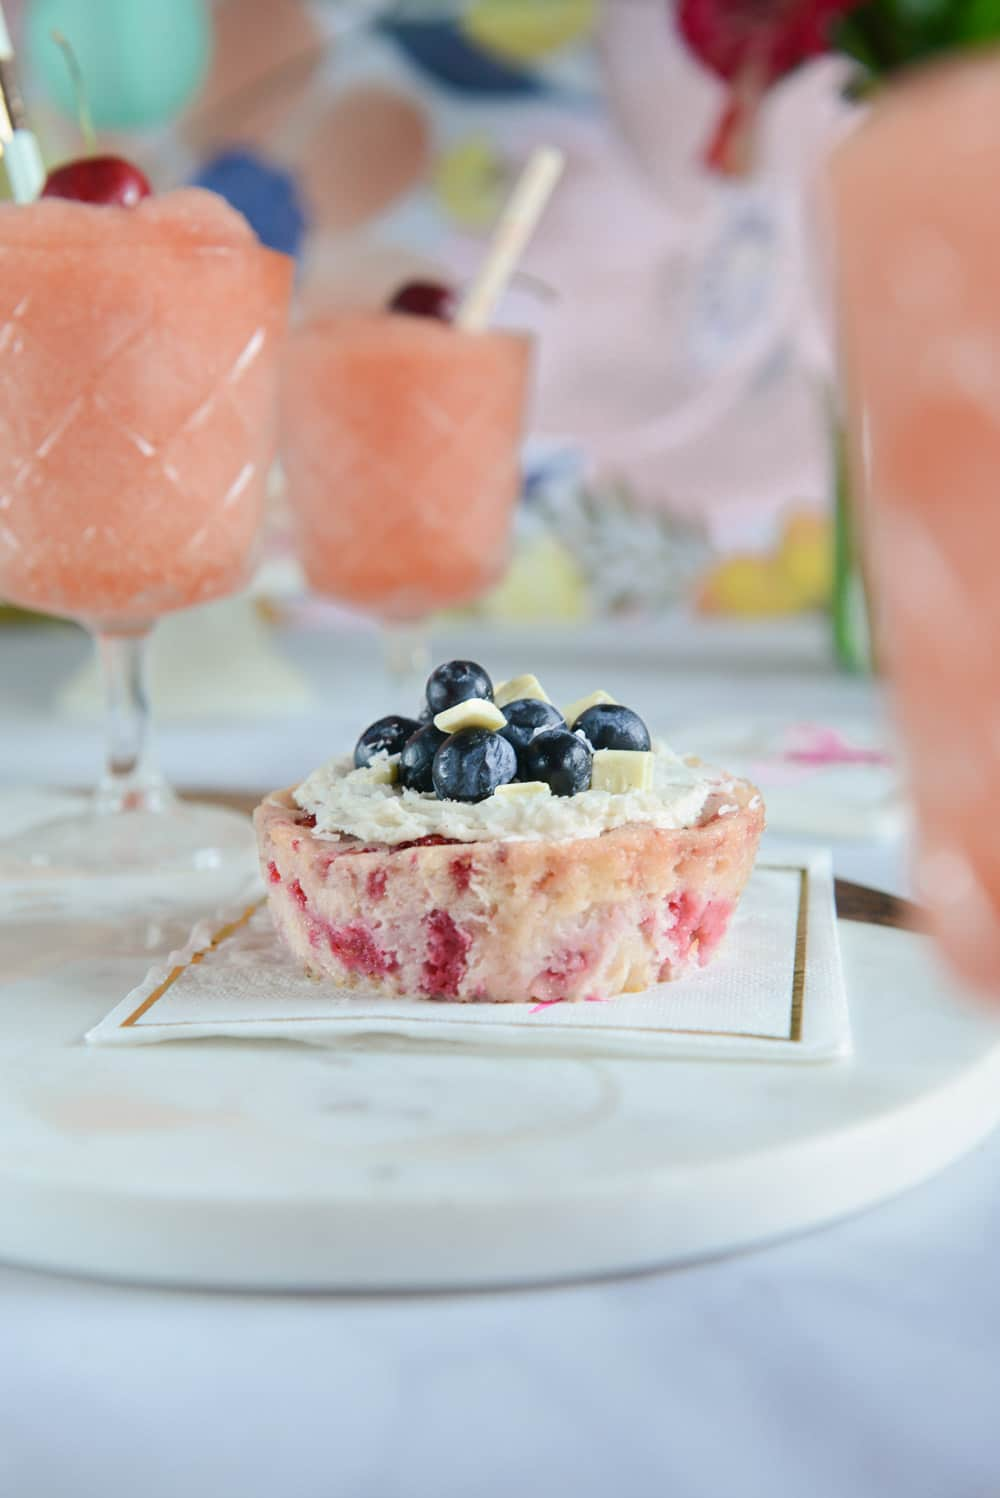 Frozen Rosé Wine (Frosé) and Berry Cakes for the 4th of July via HealthyishFoods.com